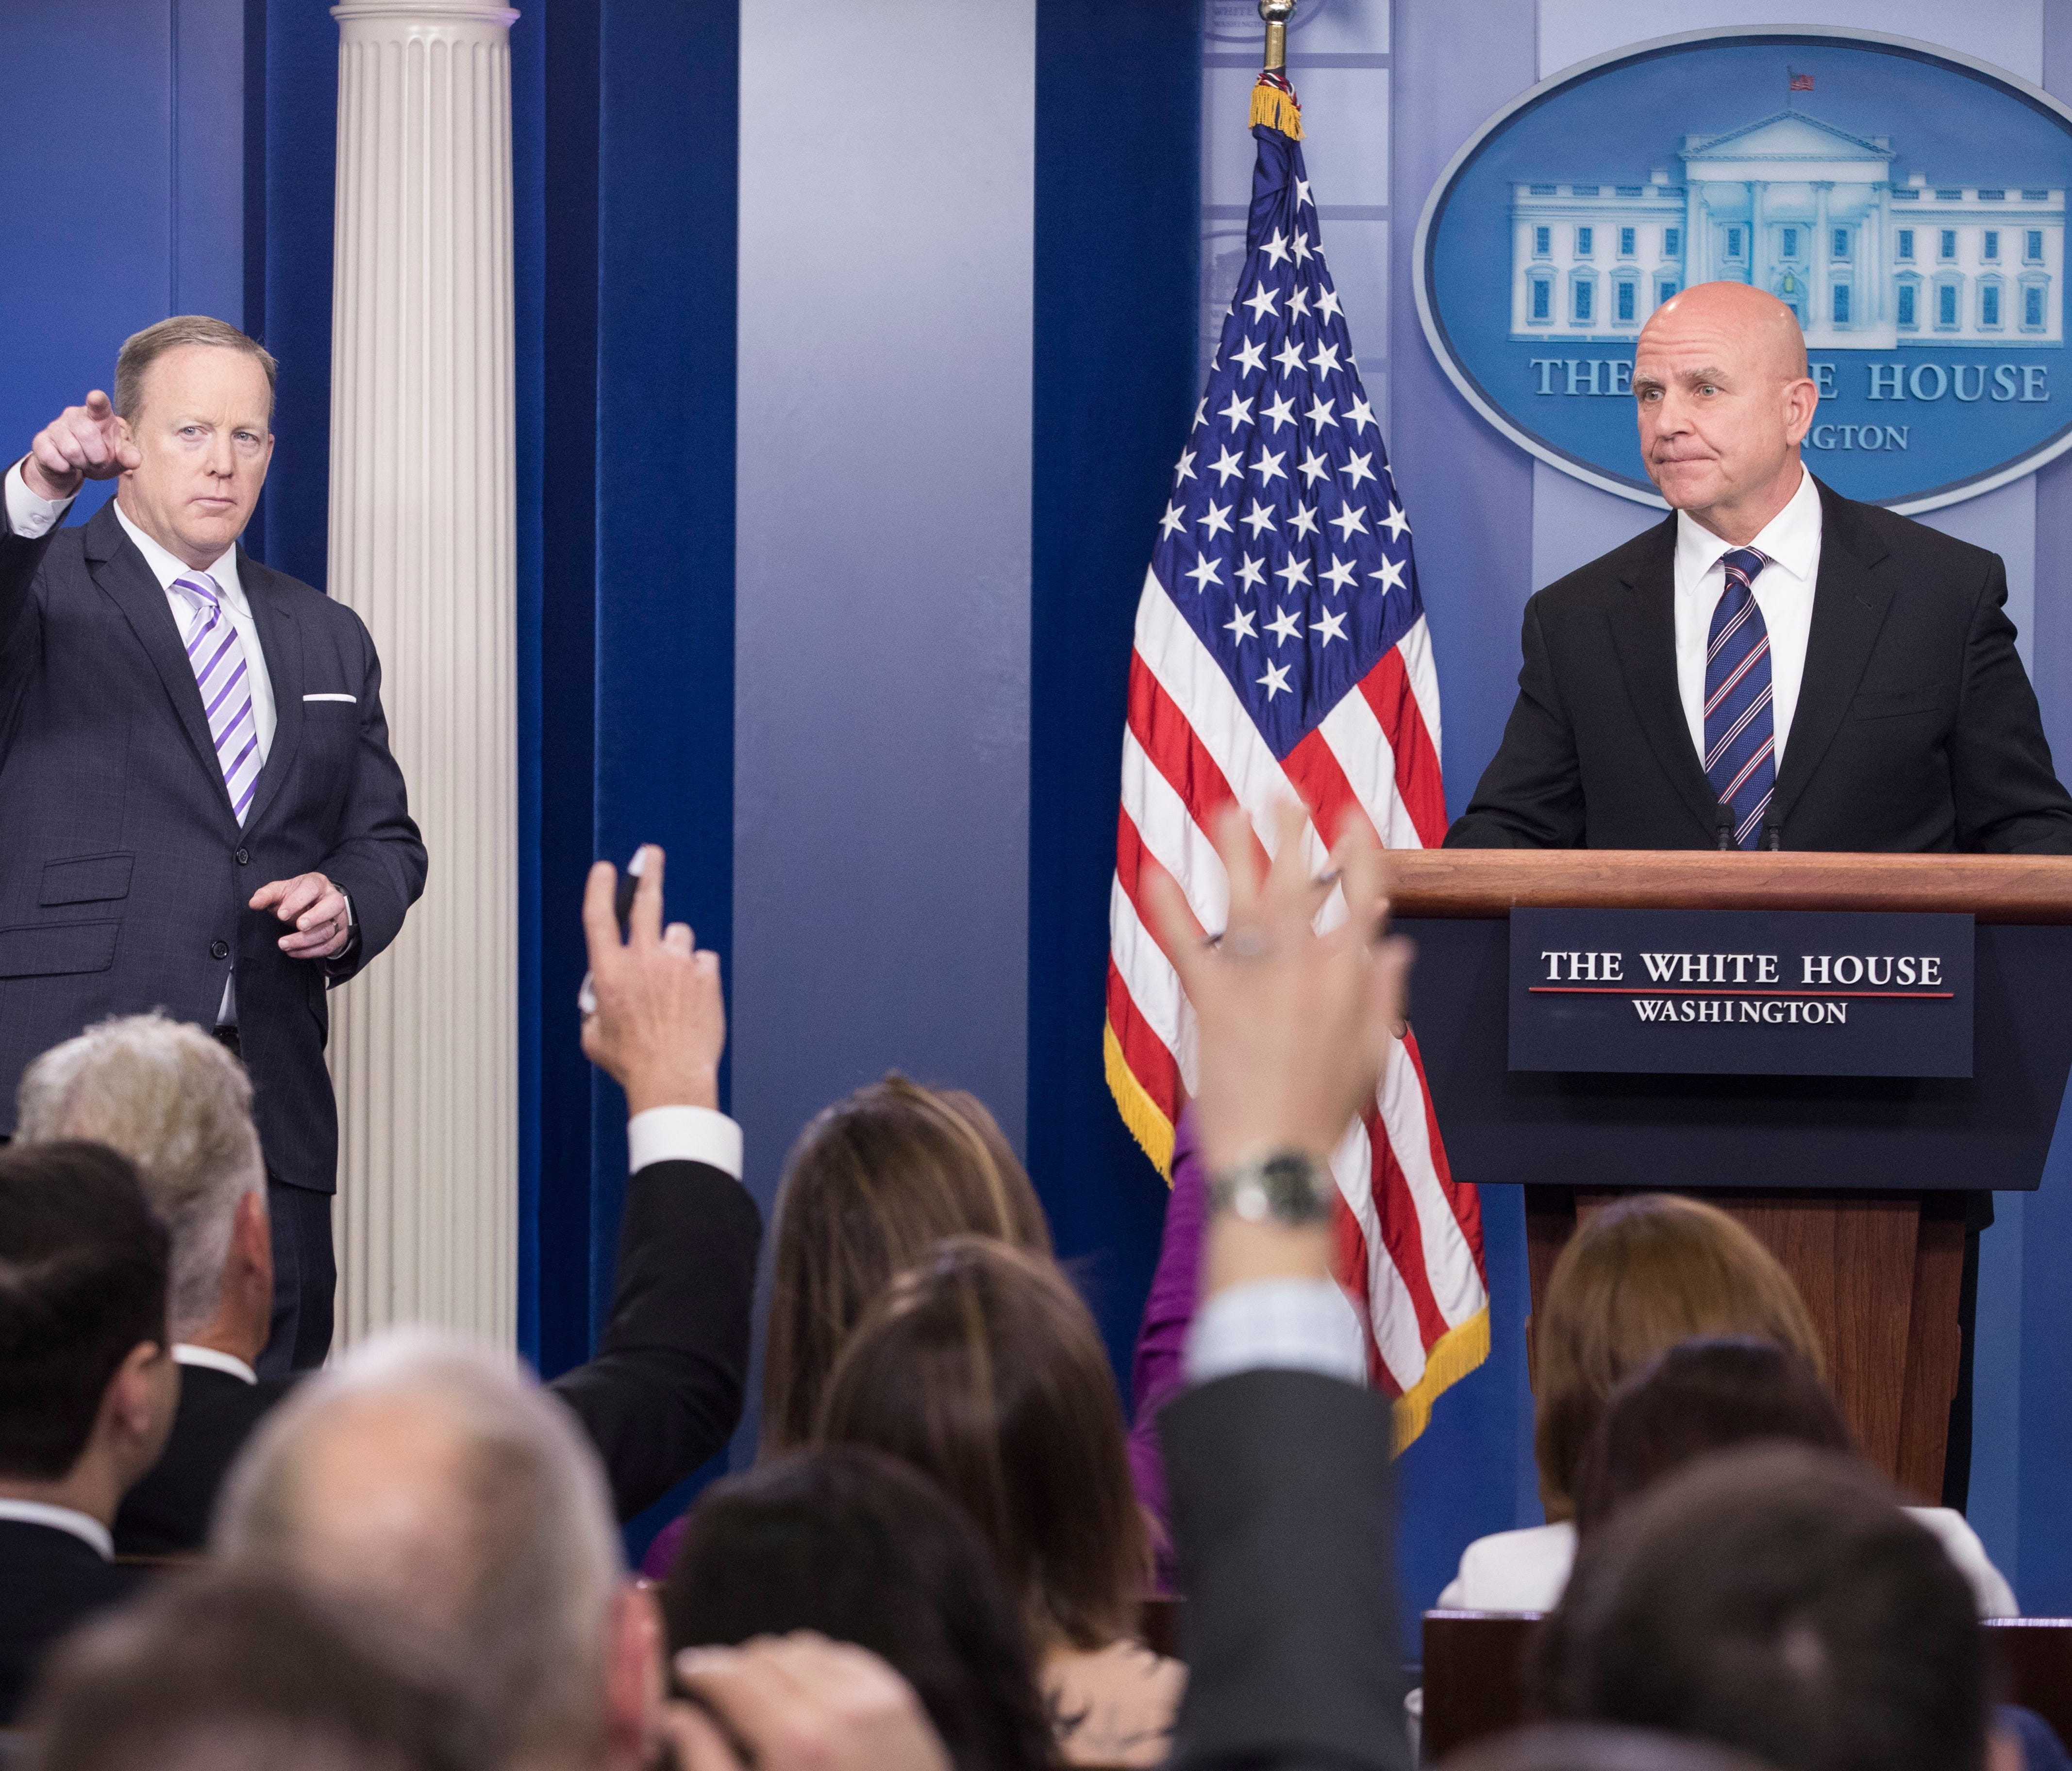 National Security Advisor H.R. McMaster  takes a question from a member of the news media, beside White House Press Secretary Sean Spicer, during a press conference in the Brady Press Briefing Room at the White House in Washington, DC, USA, 16 May 20